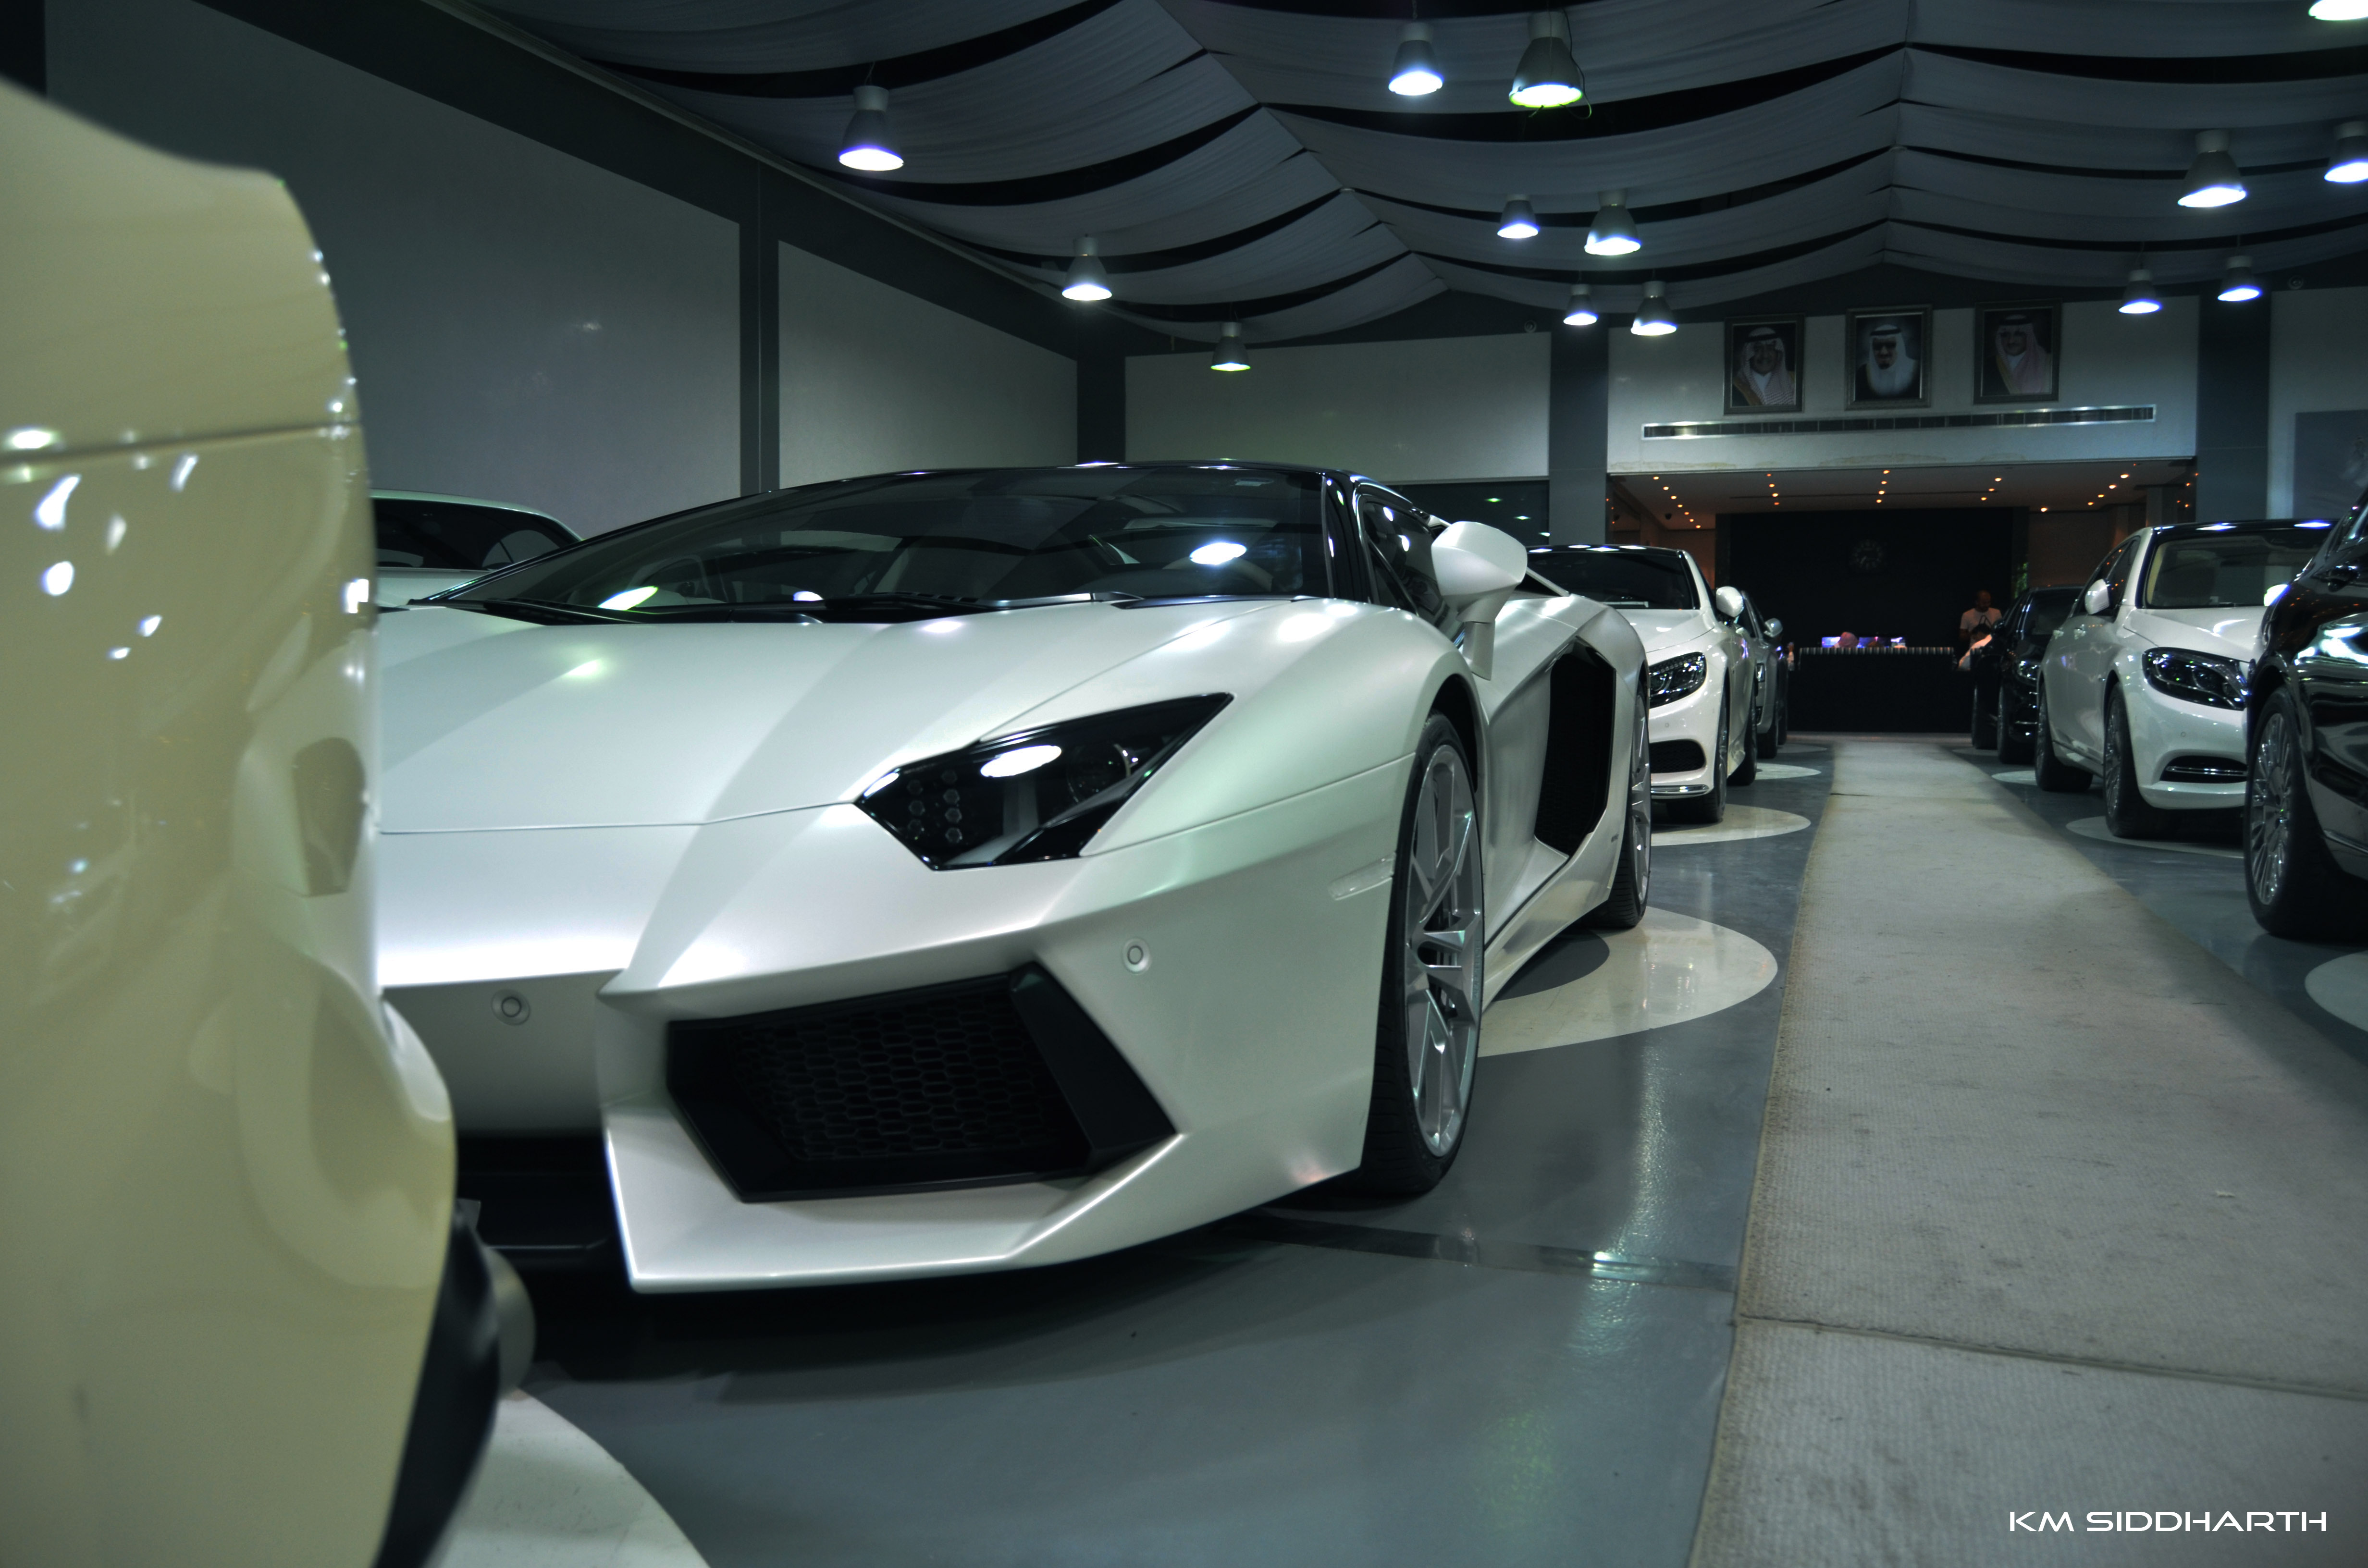 I took this picture of the Lamborghini Aventador Roadster when I